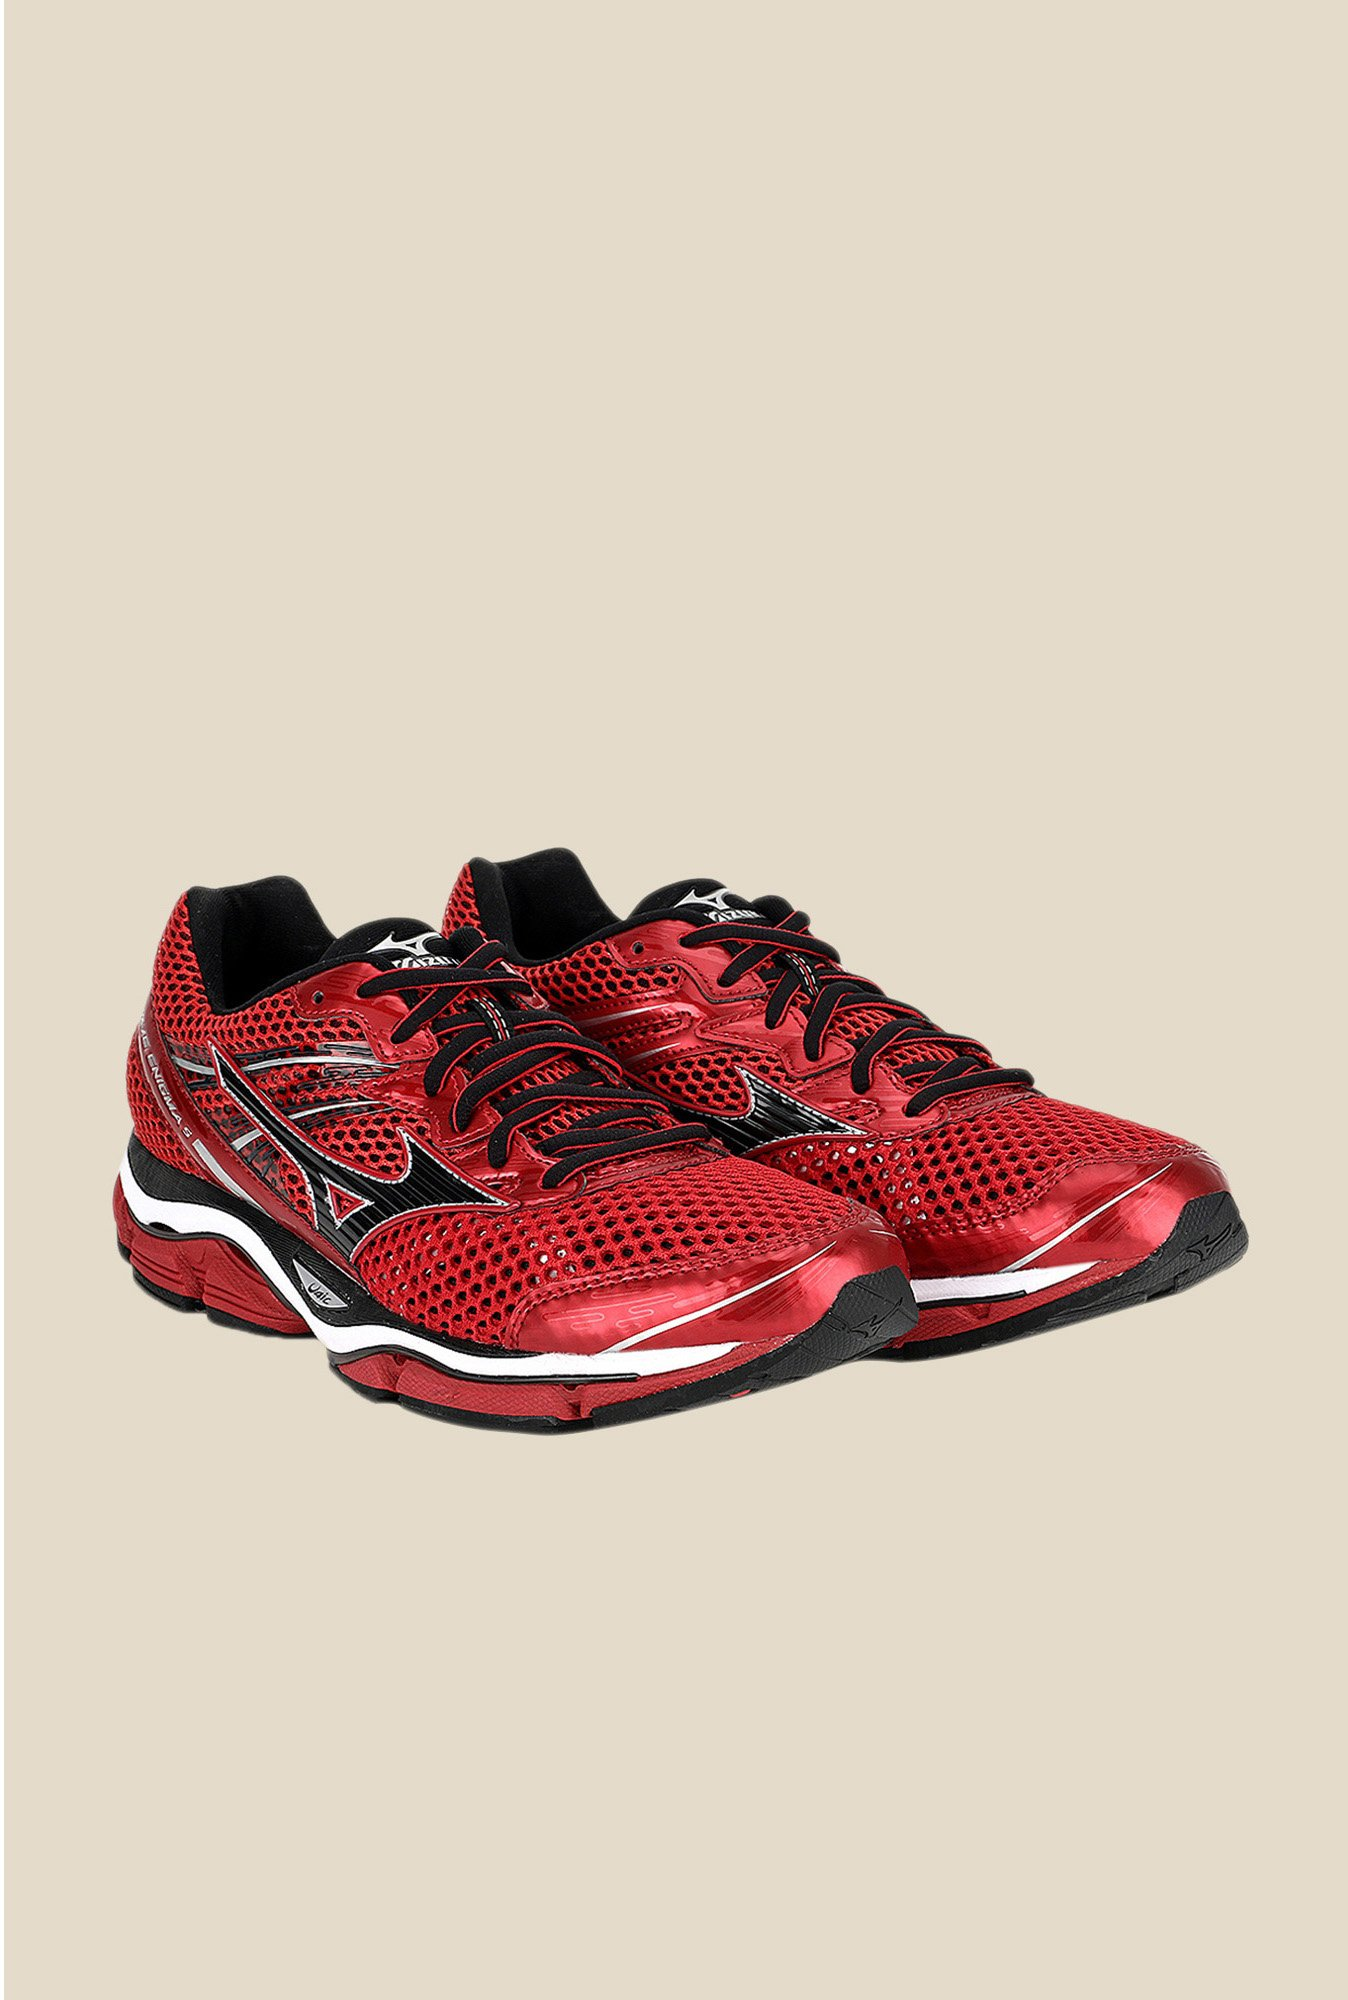 Mizuno Wave Enigma 5 Red & Black Running Shoes